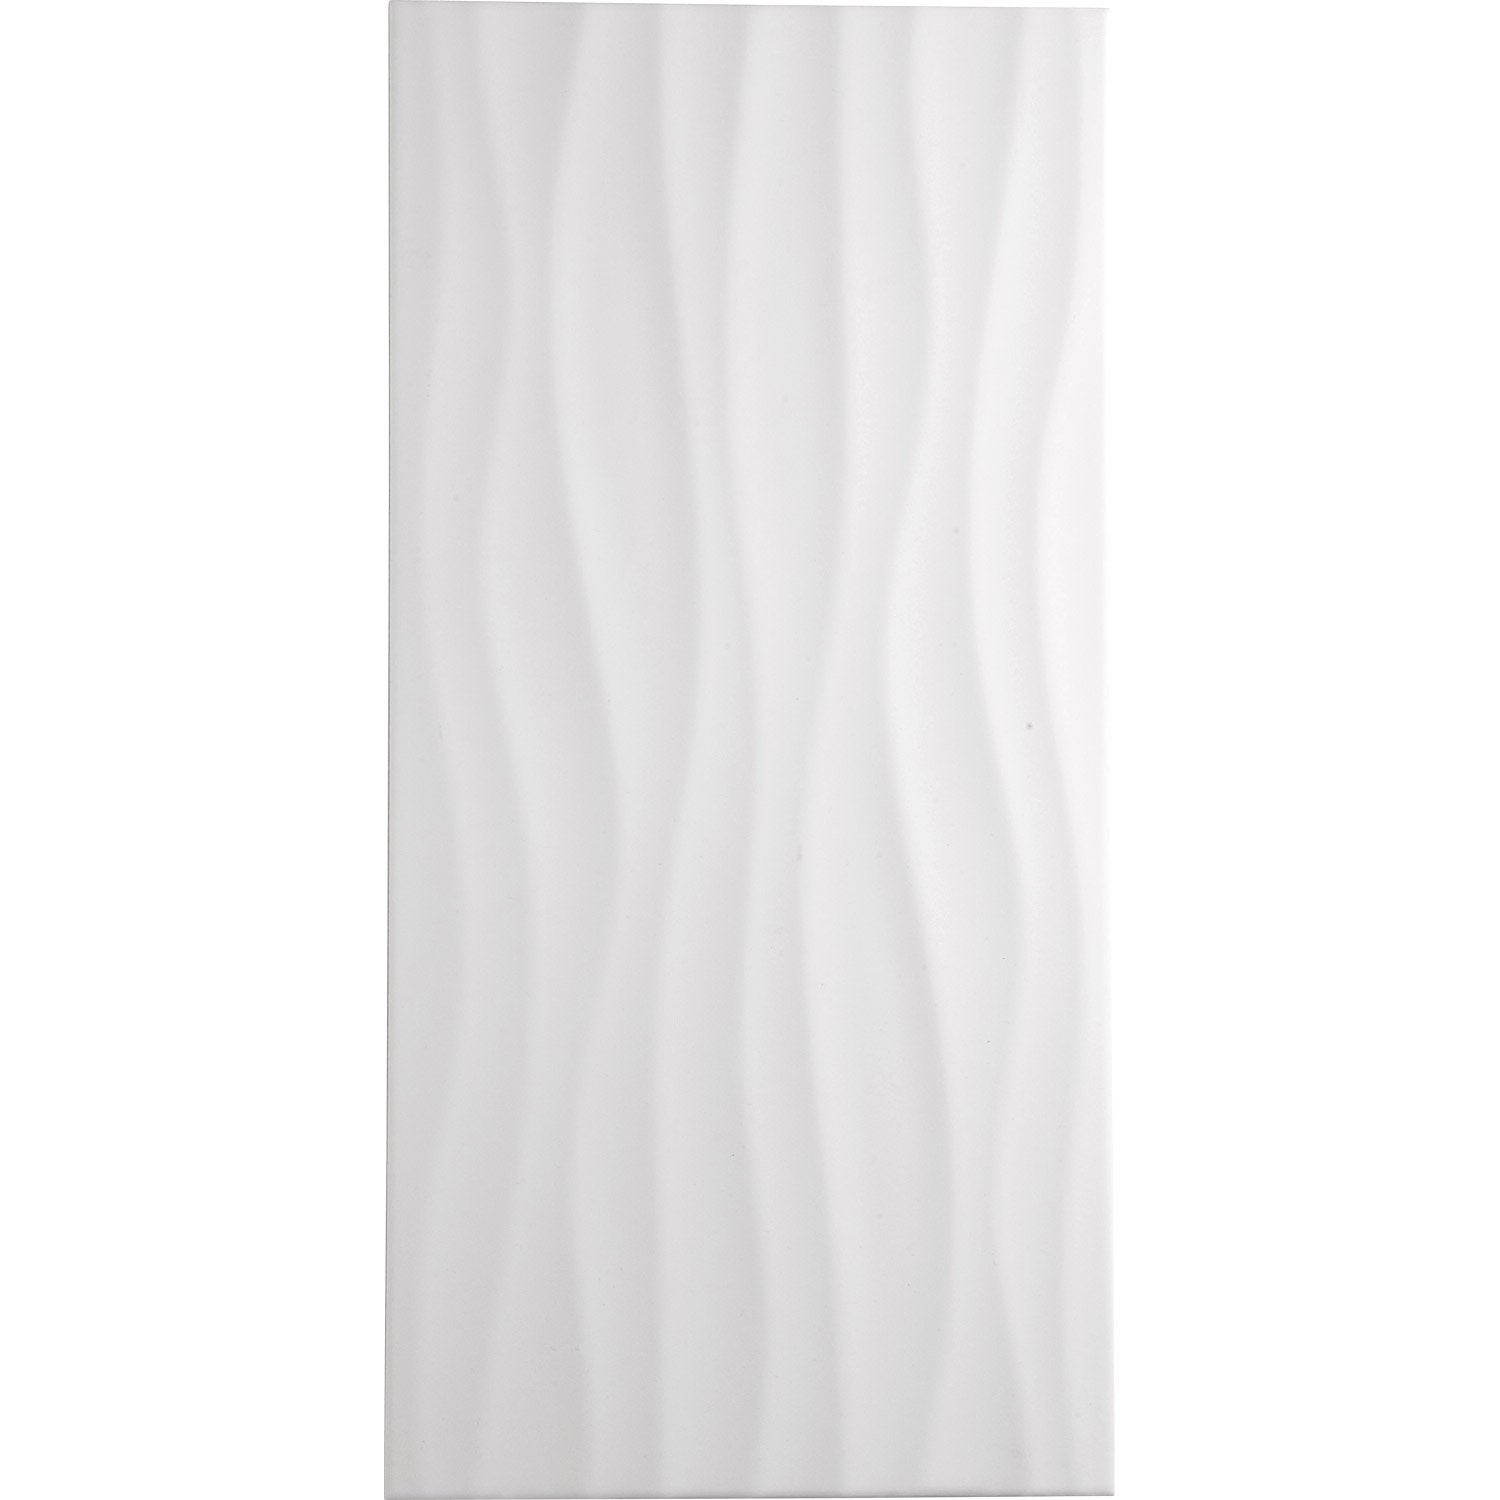 Beautiful carrelage salle de bain blanc relief ideas for Carrelage salle de bain blanc mat